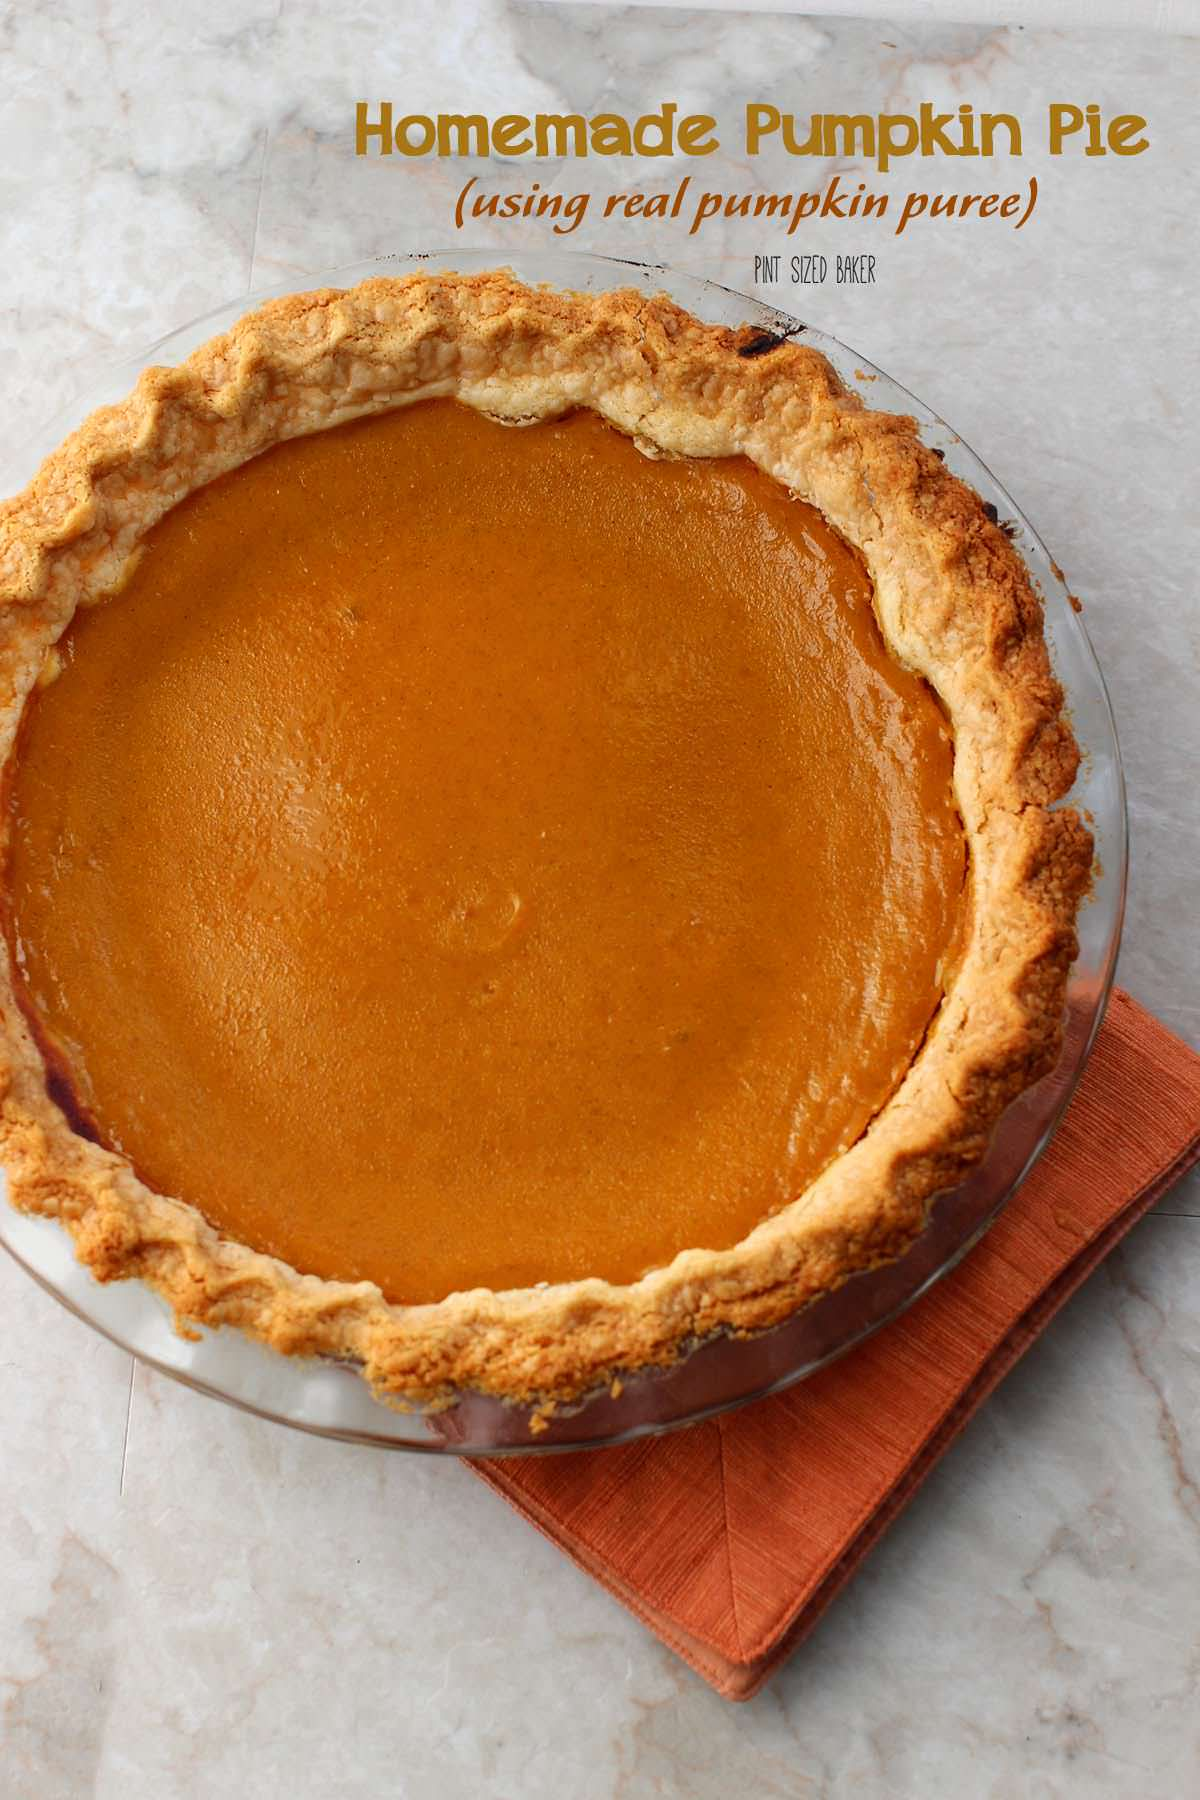 This beautiful homemade pumpkin pie is made from real, roasted pumpkin.